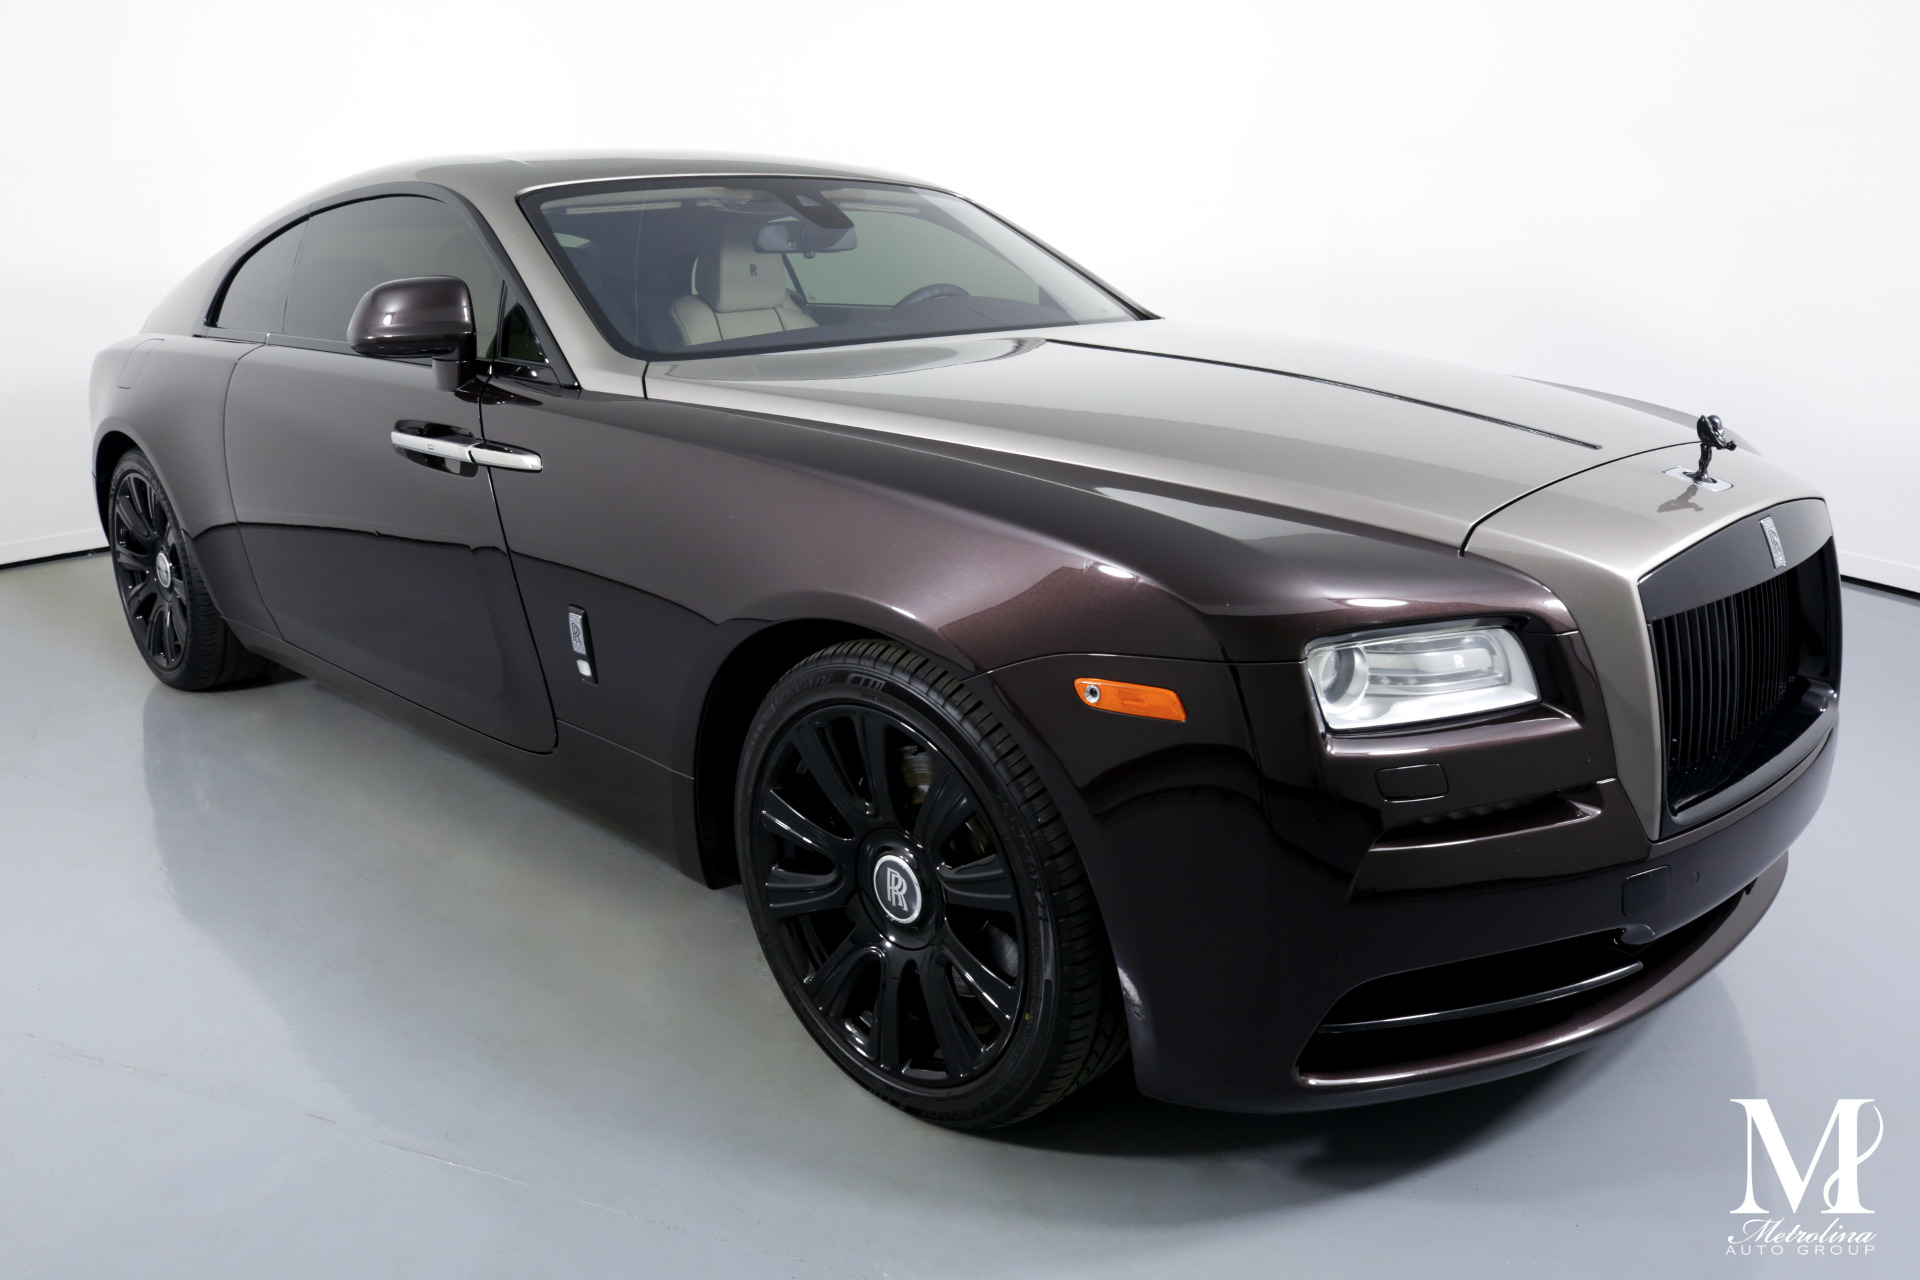 Used 2014 Rolls-Royce Wraith for sale $157,996 at Metrolina Auto Group in Charlotte NC 28217 - 2